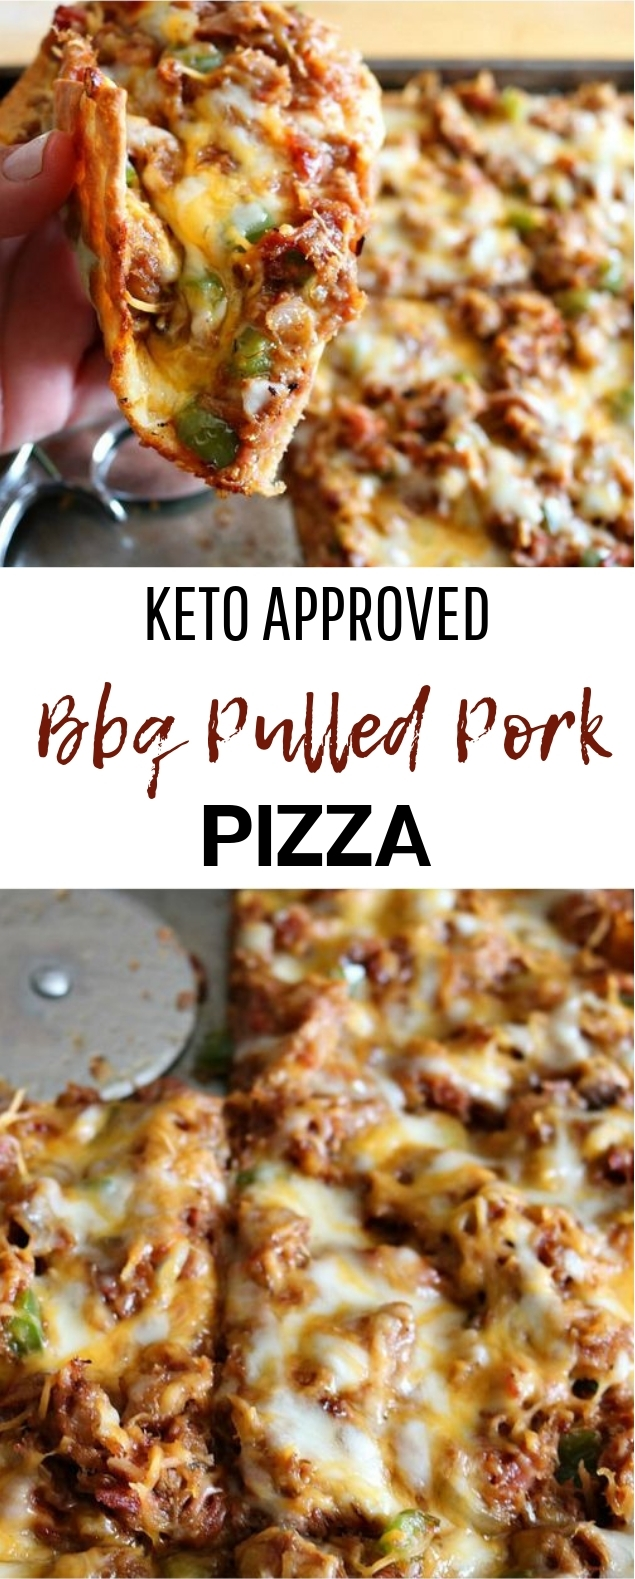 Keto Fathead BBQ Pulled Pork Pizza #keto #healthy #lowcarb